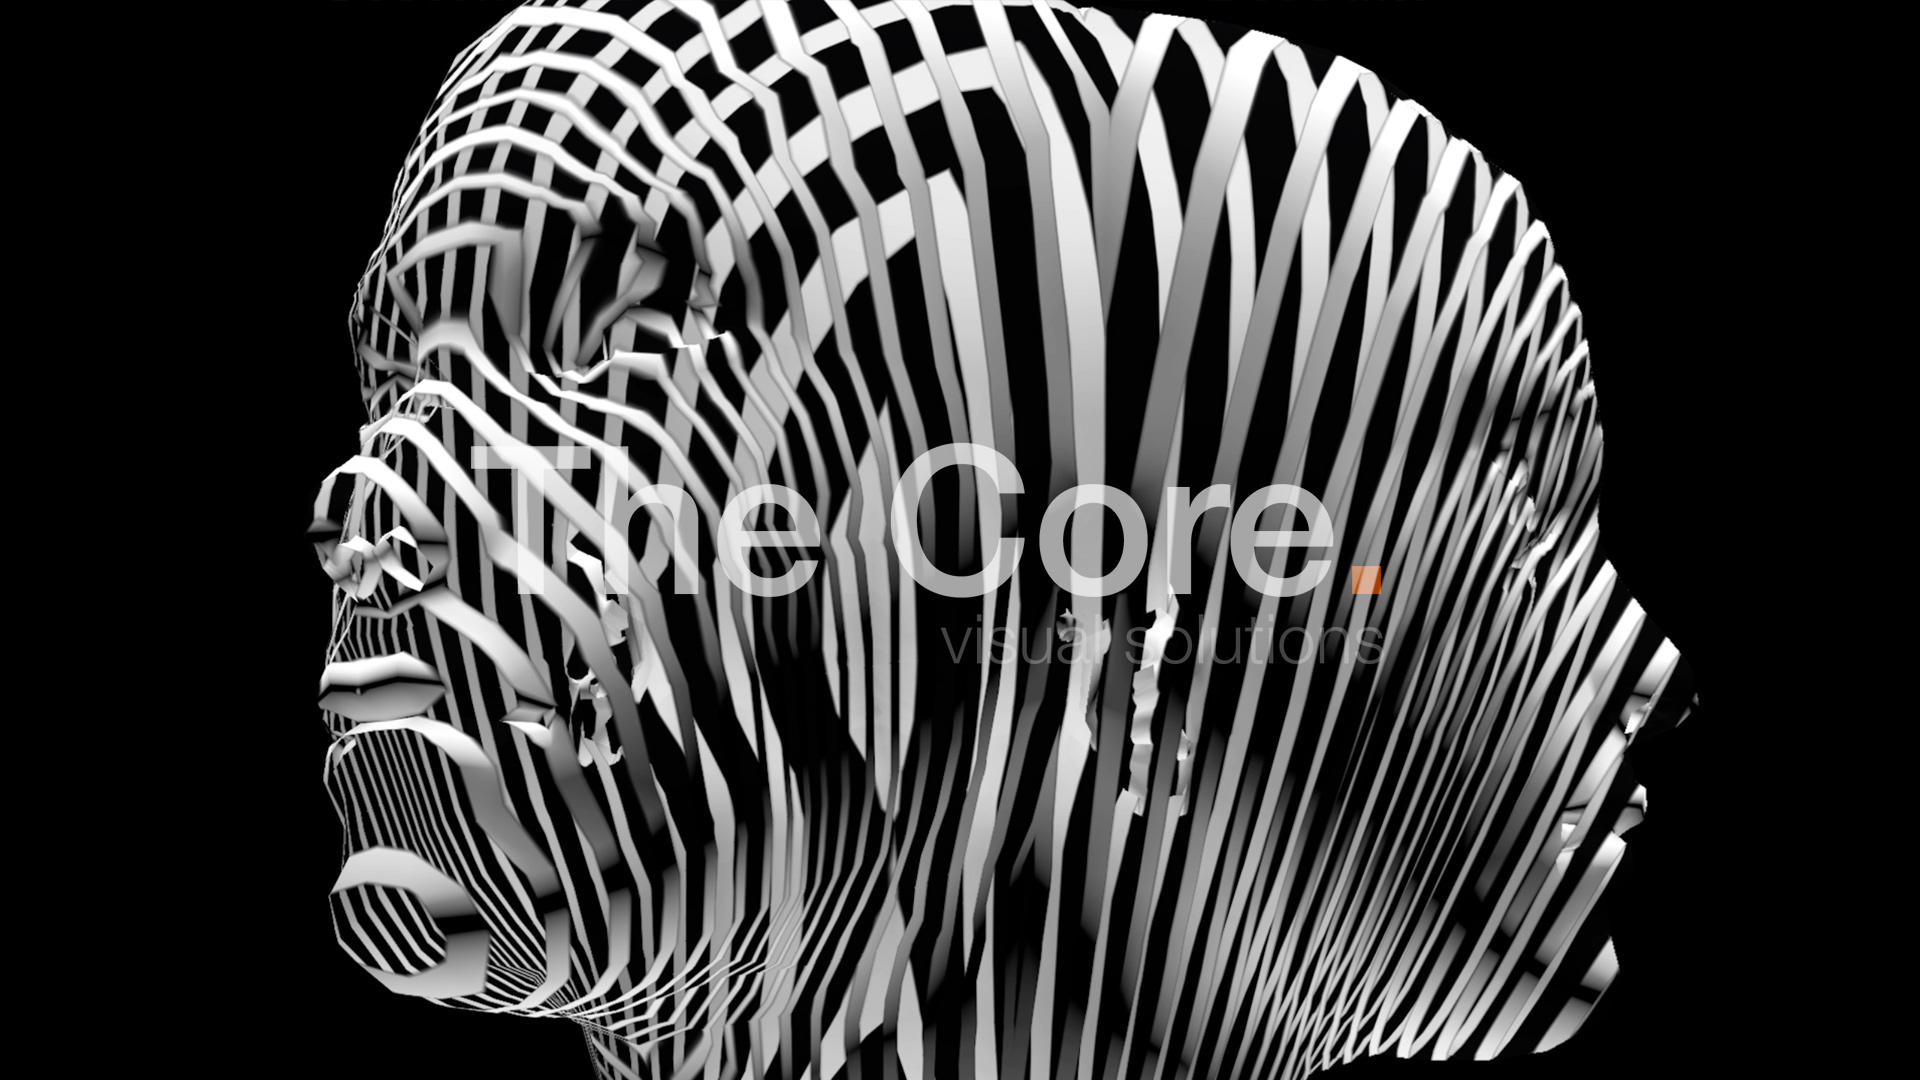 00222-HEAD-6-STILL-by-The-Core